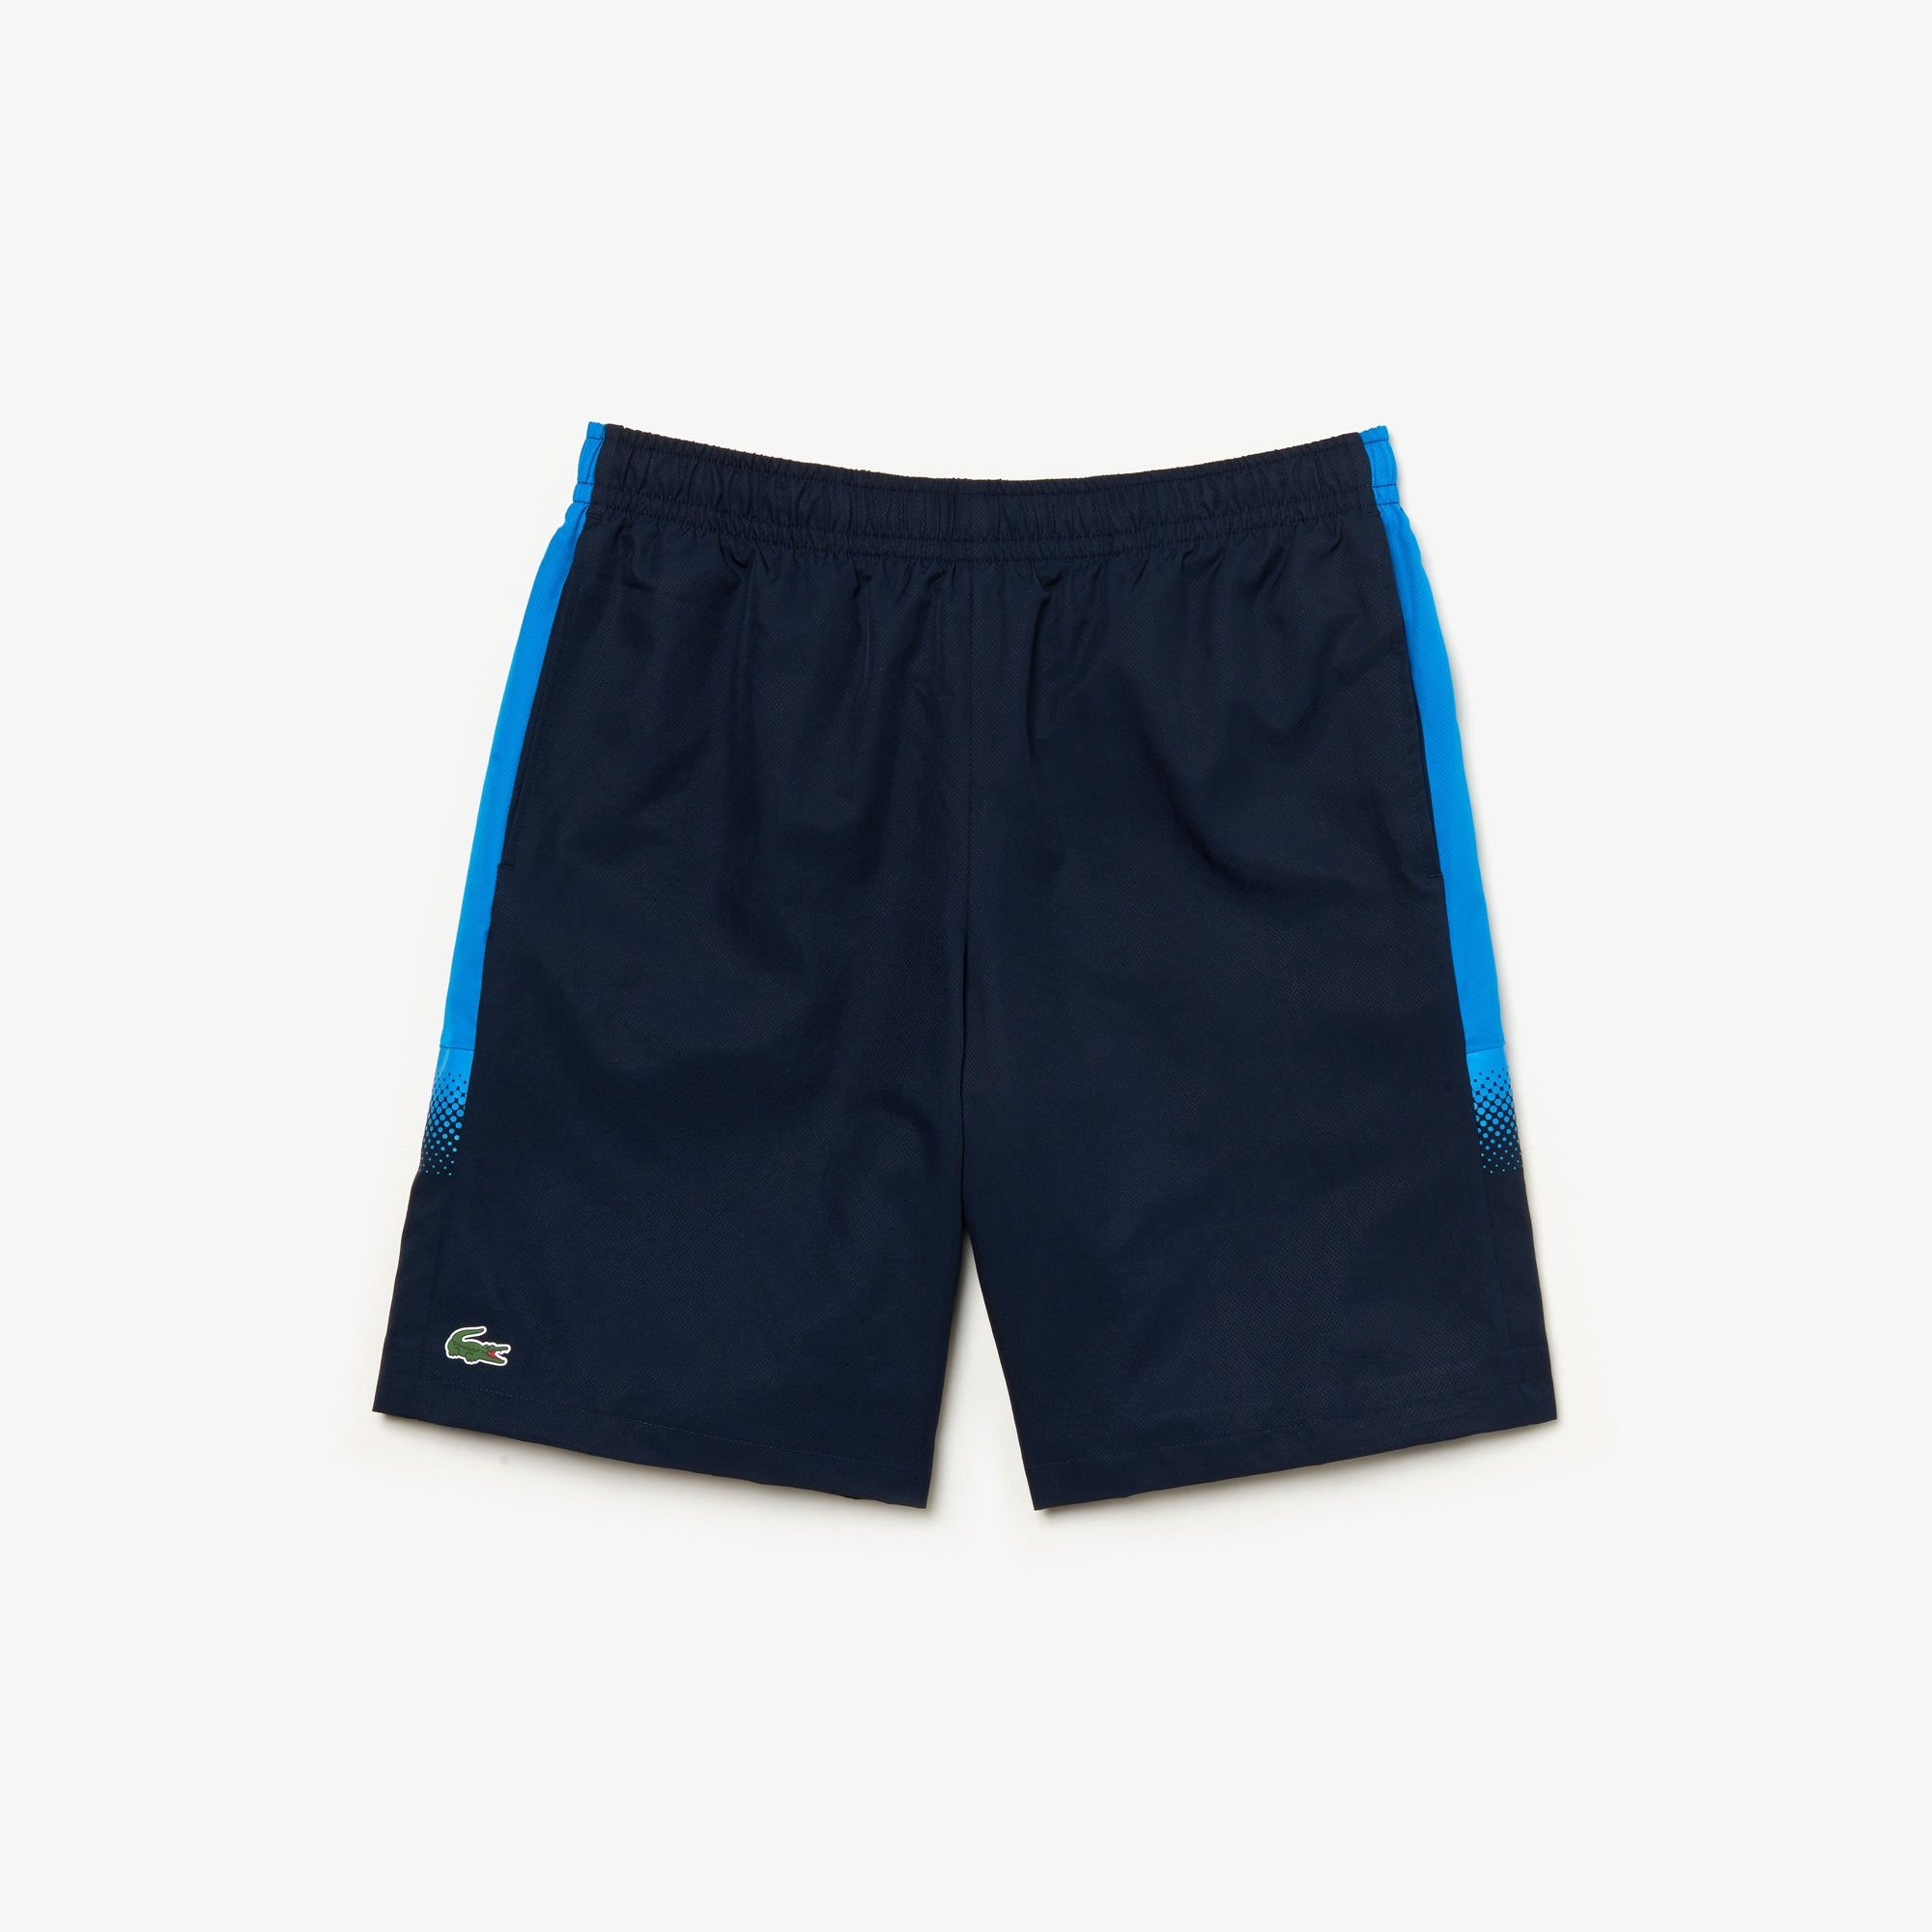 97be23d48f Trousers and shorts for men | Men's fashion | LACOSTE